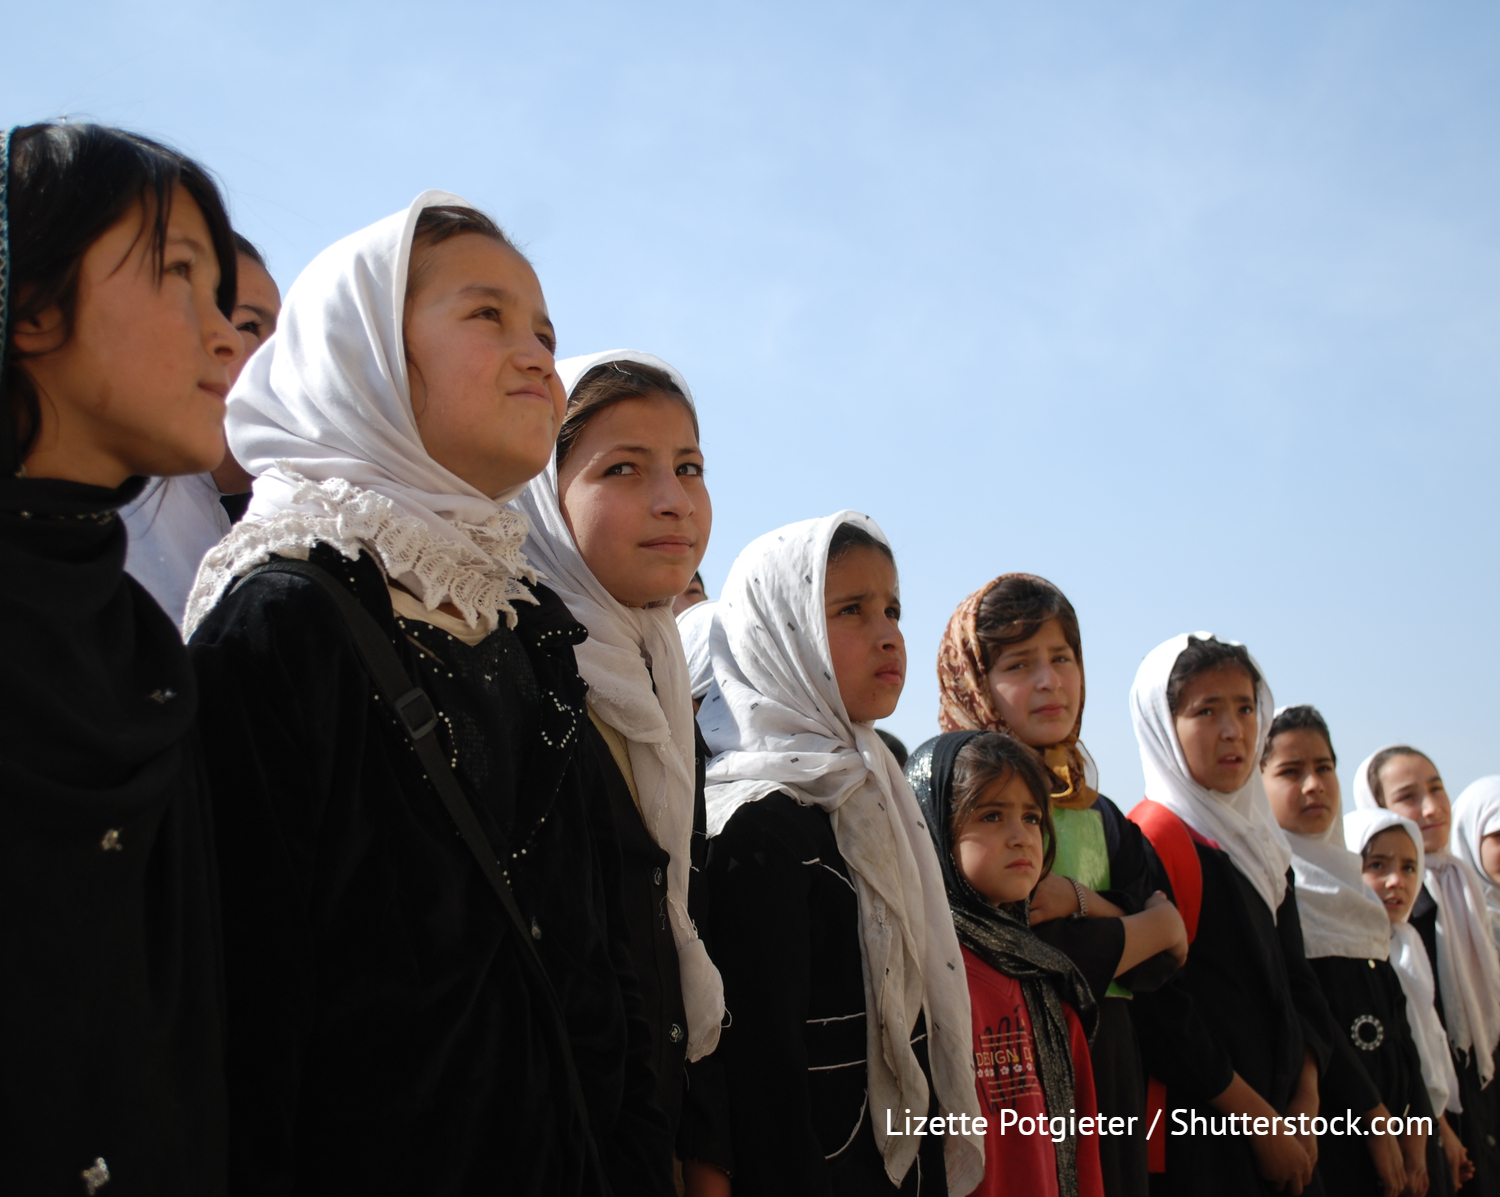 MAZAR - OCTOBER 31: Afghan school girls, from Mazar, Balkh, stand on attention October 31, 2009 during a ceremony in Mazar, northern Afghanistan. School receives foreign donor support.